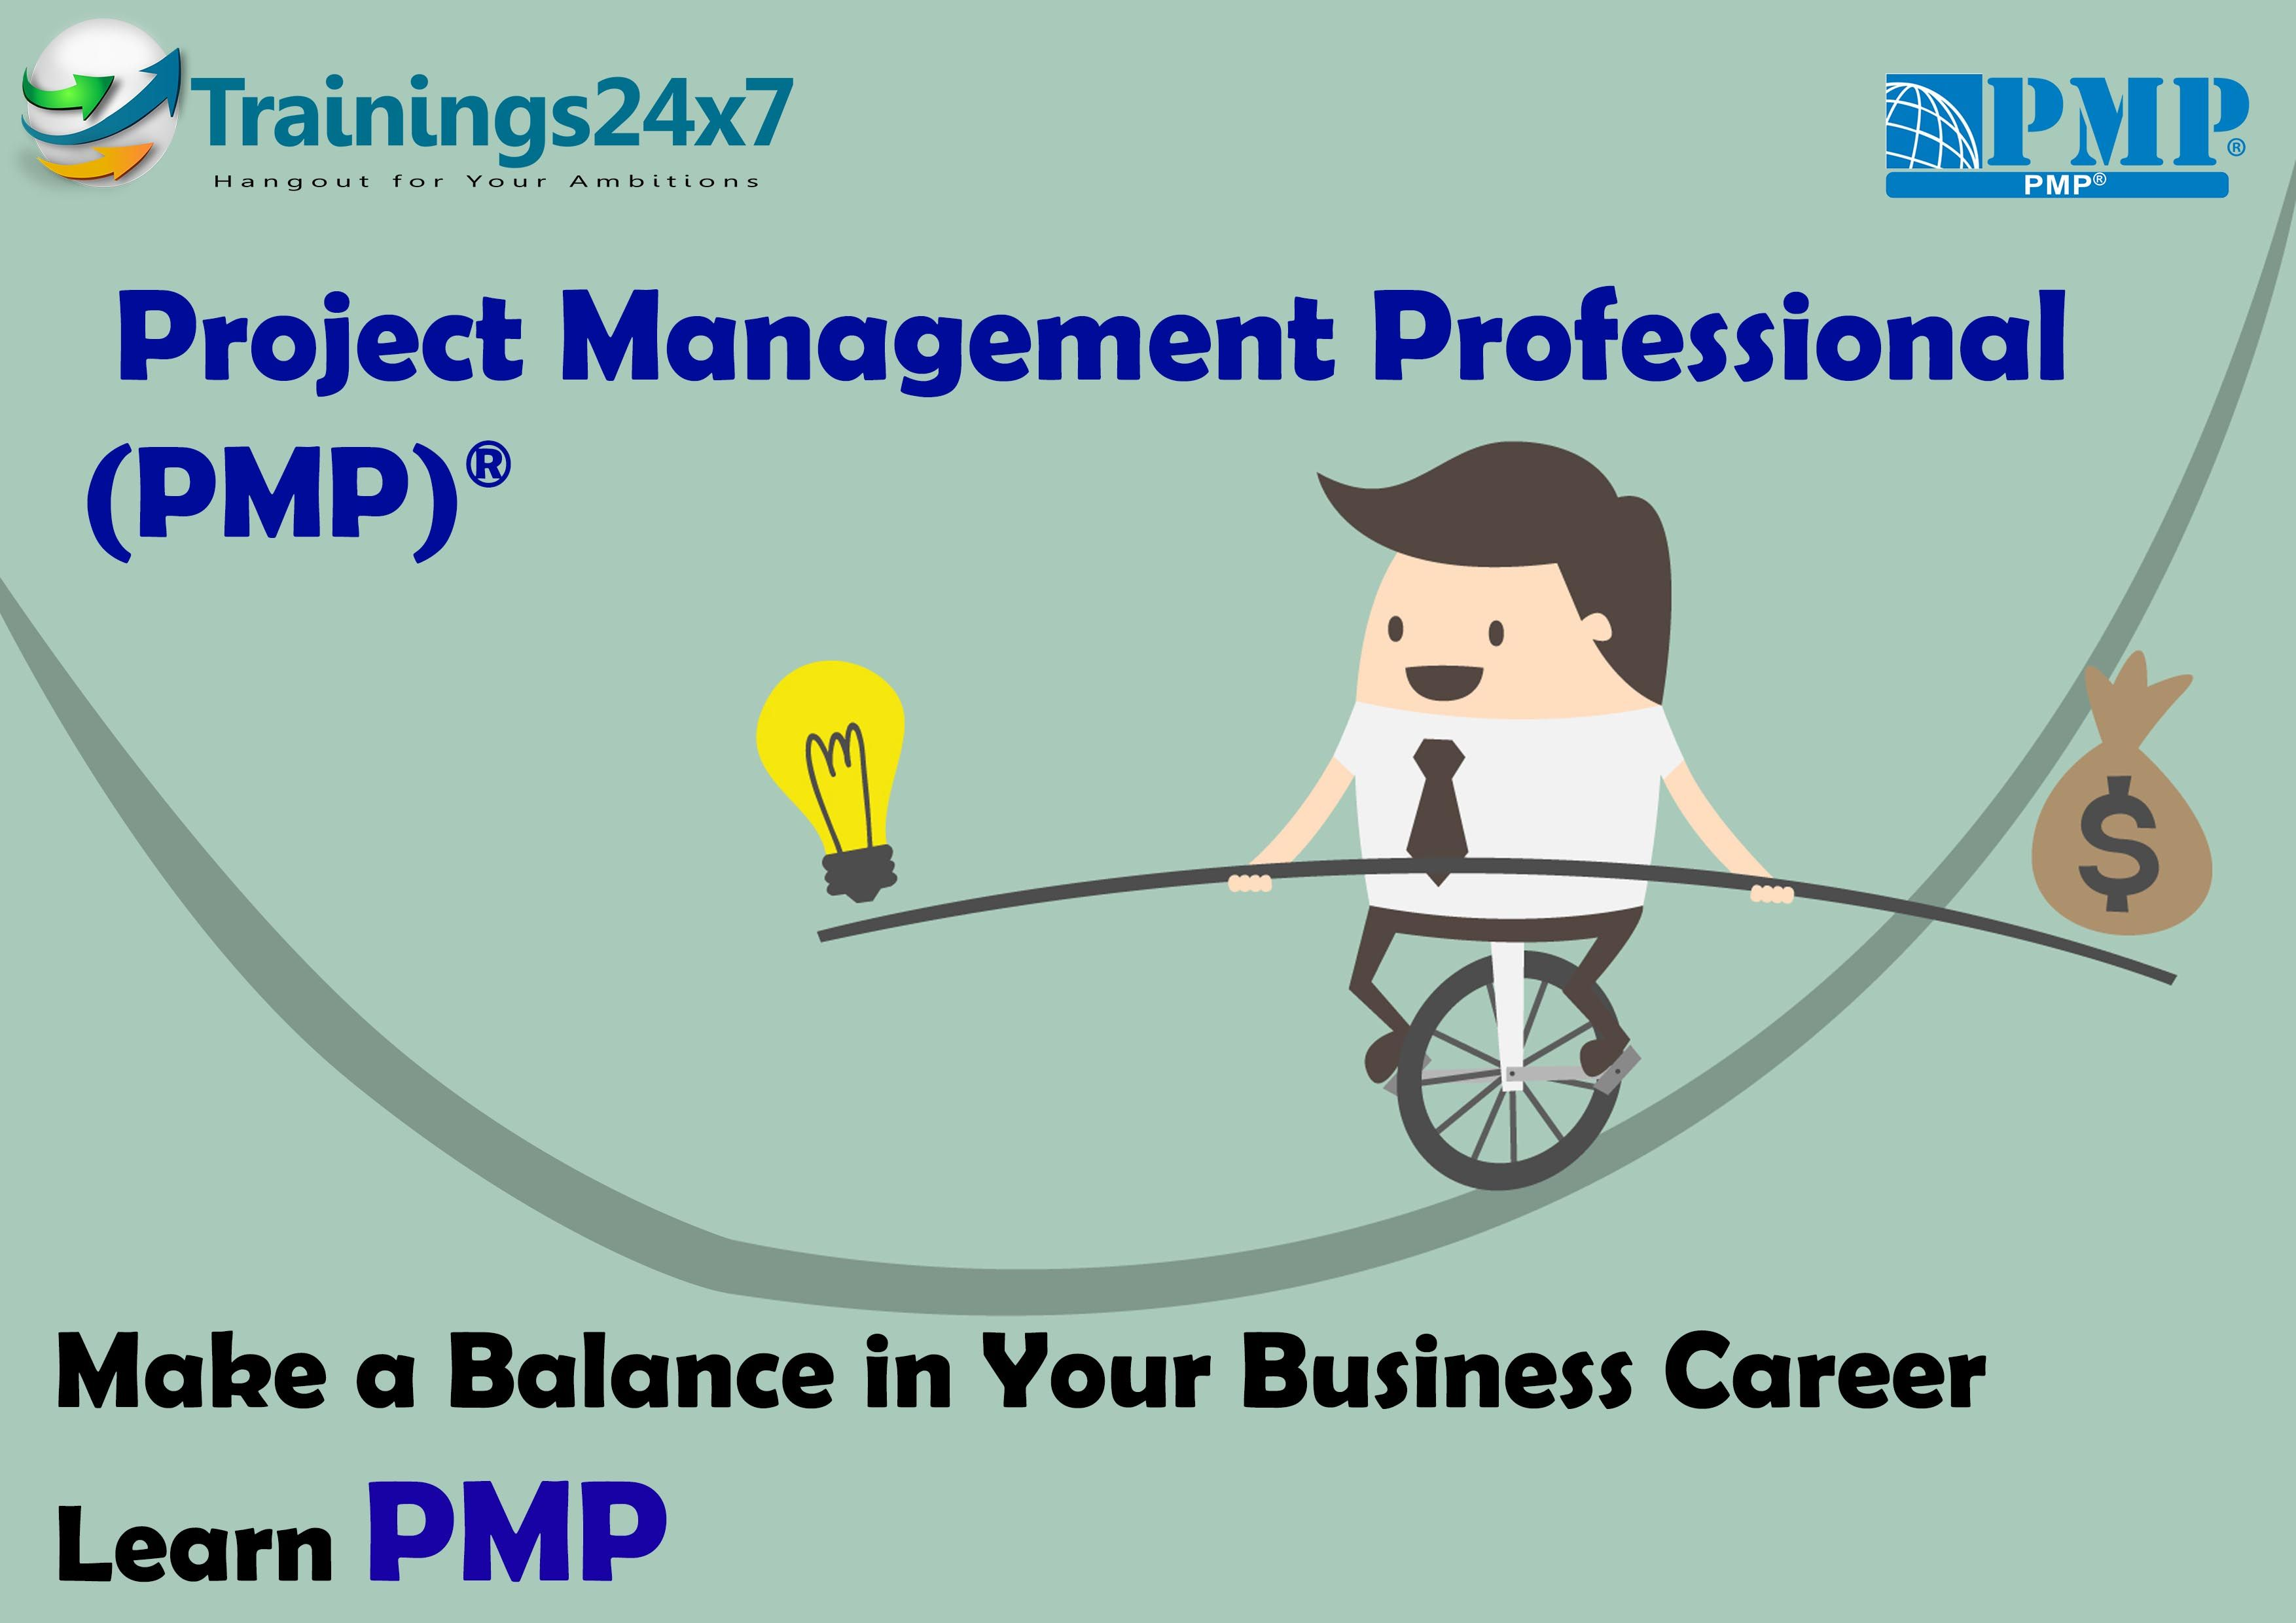 44 best pmp exam certification updates images on pinterest pmp 44 best pmp exam certification updates images on pinterest pmp exam join and project management 1betcityfo Gallery